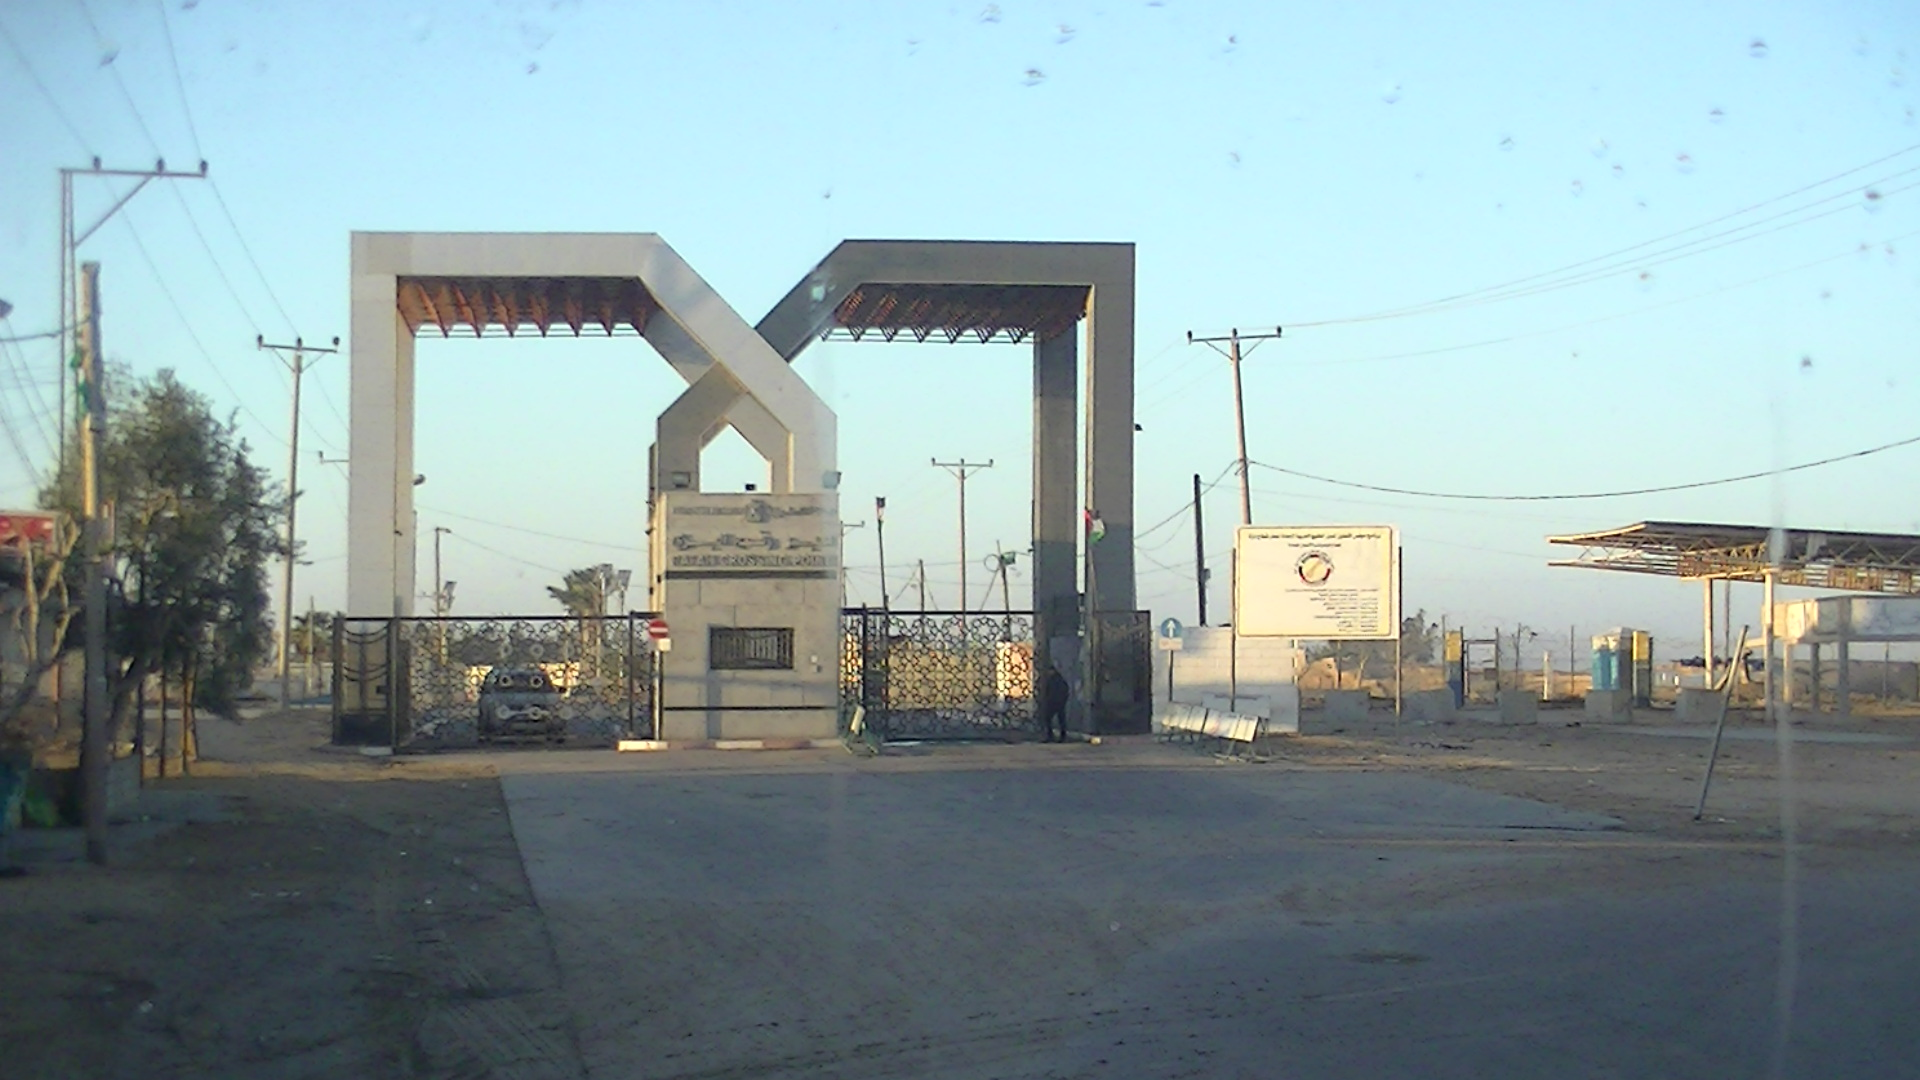 Rafah Crossing - seen from the Palestinian side